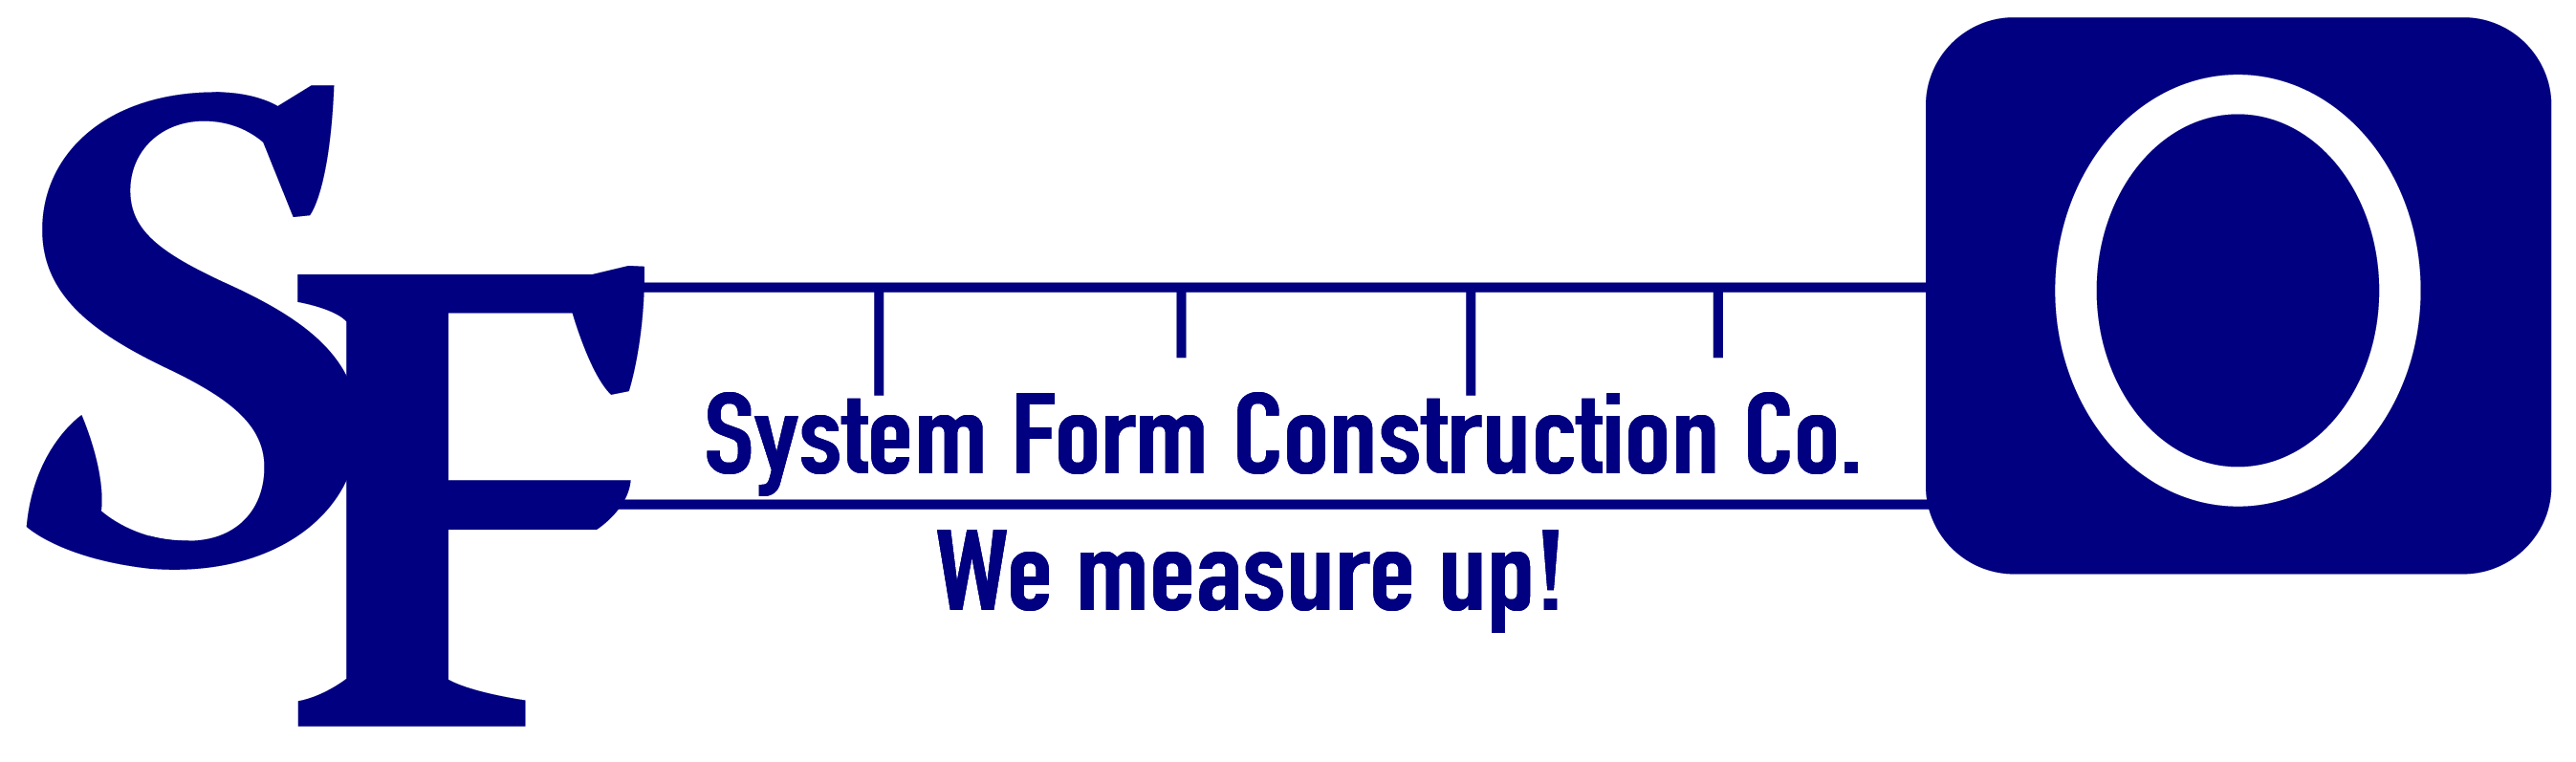 System Form Construction Co.